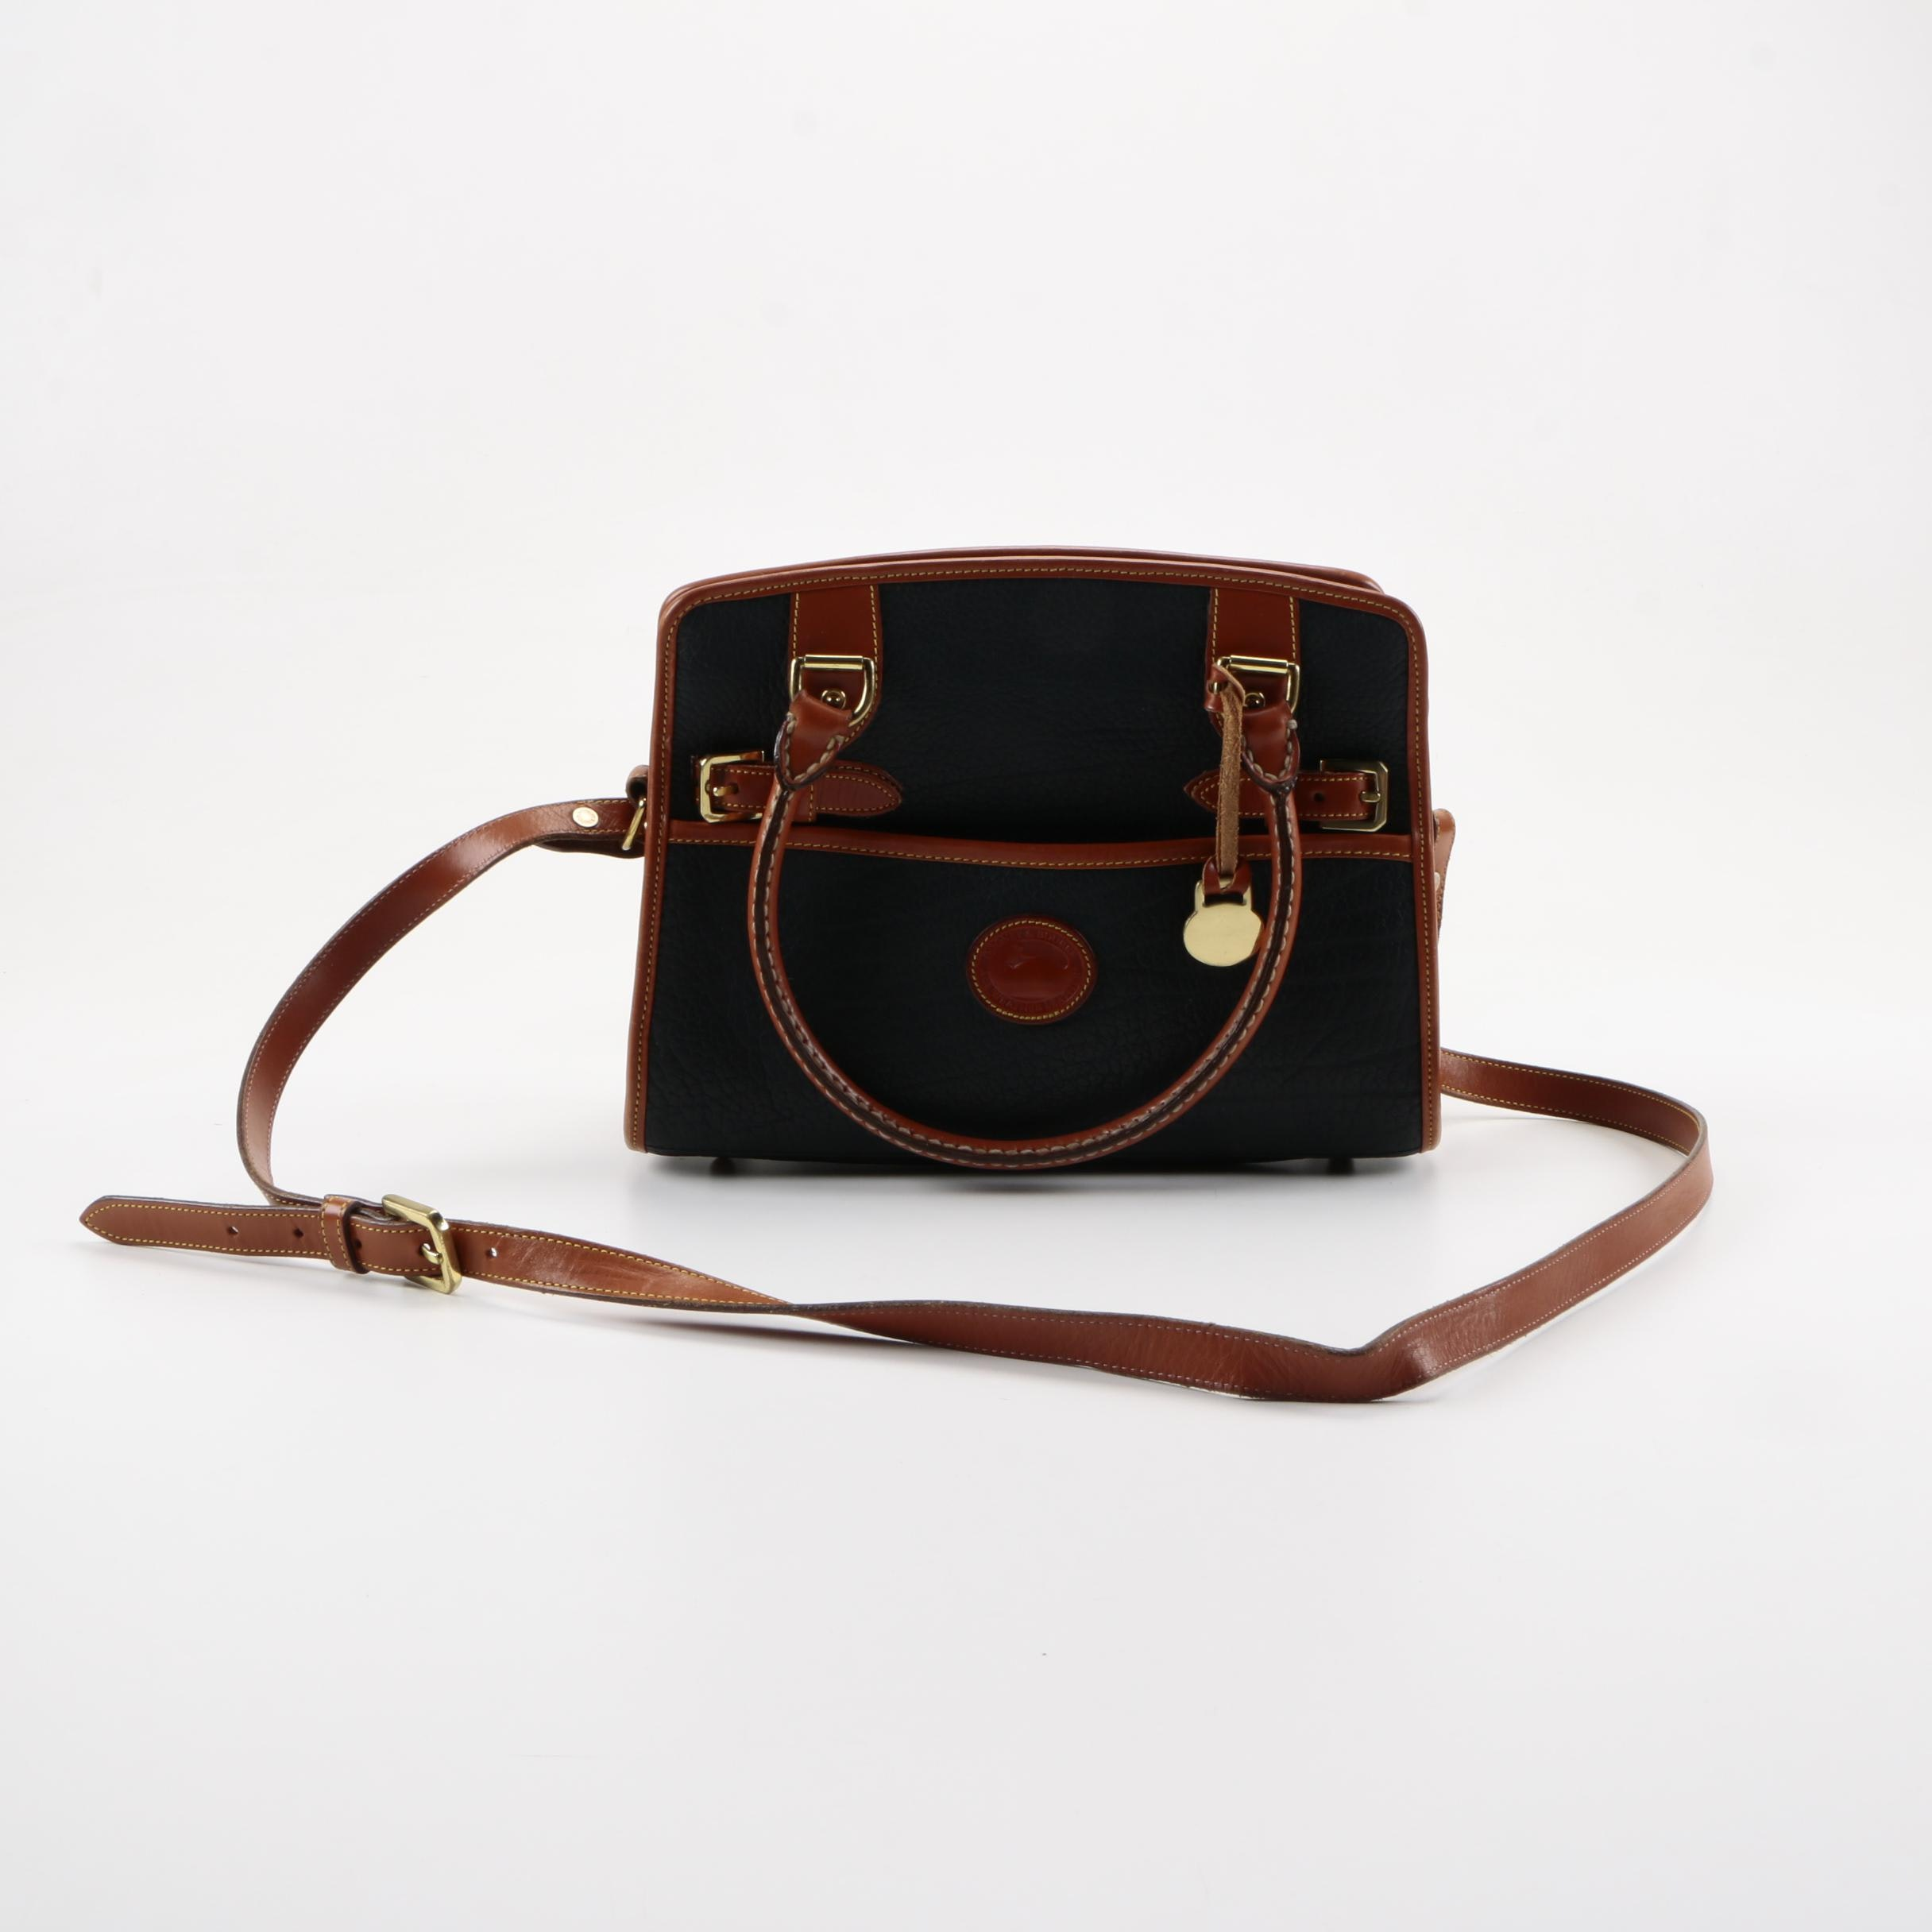 Dooney & Bourke All Leather Weather Buckle Satchel